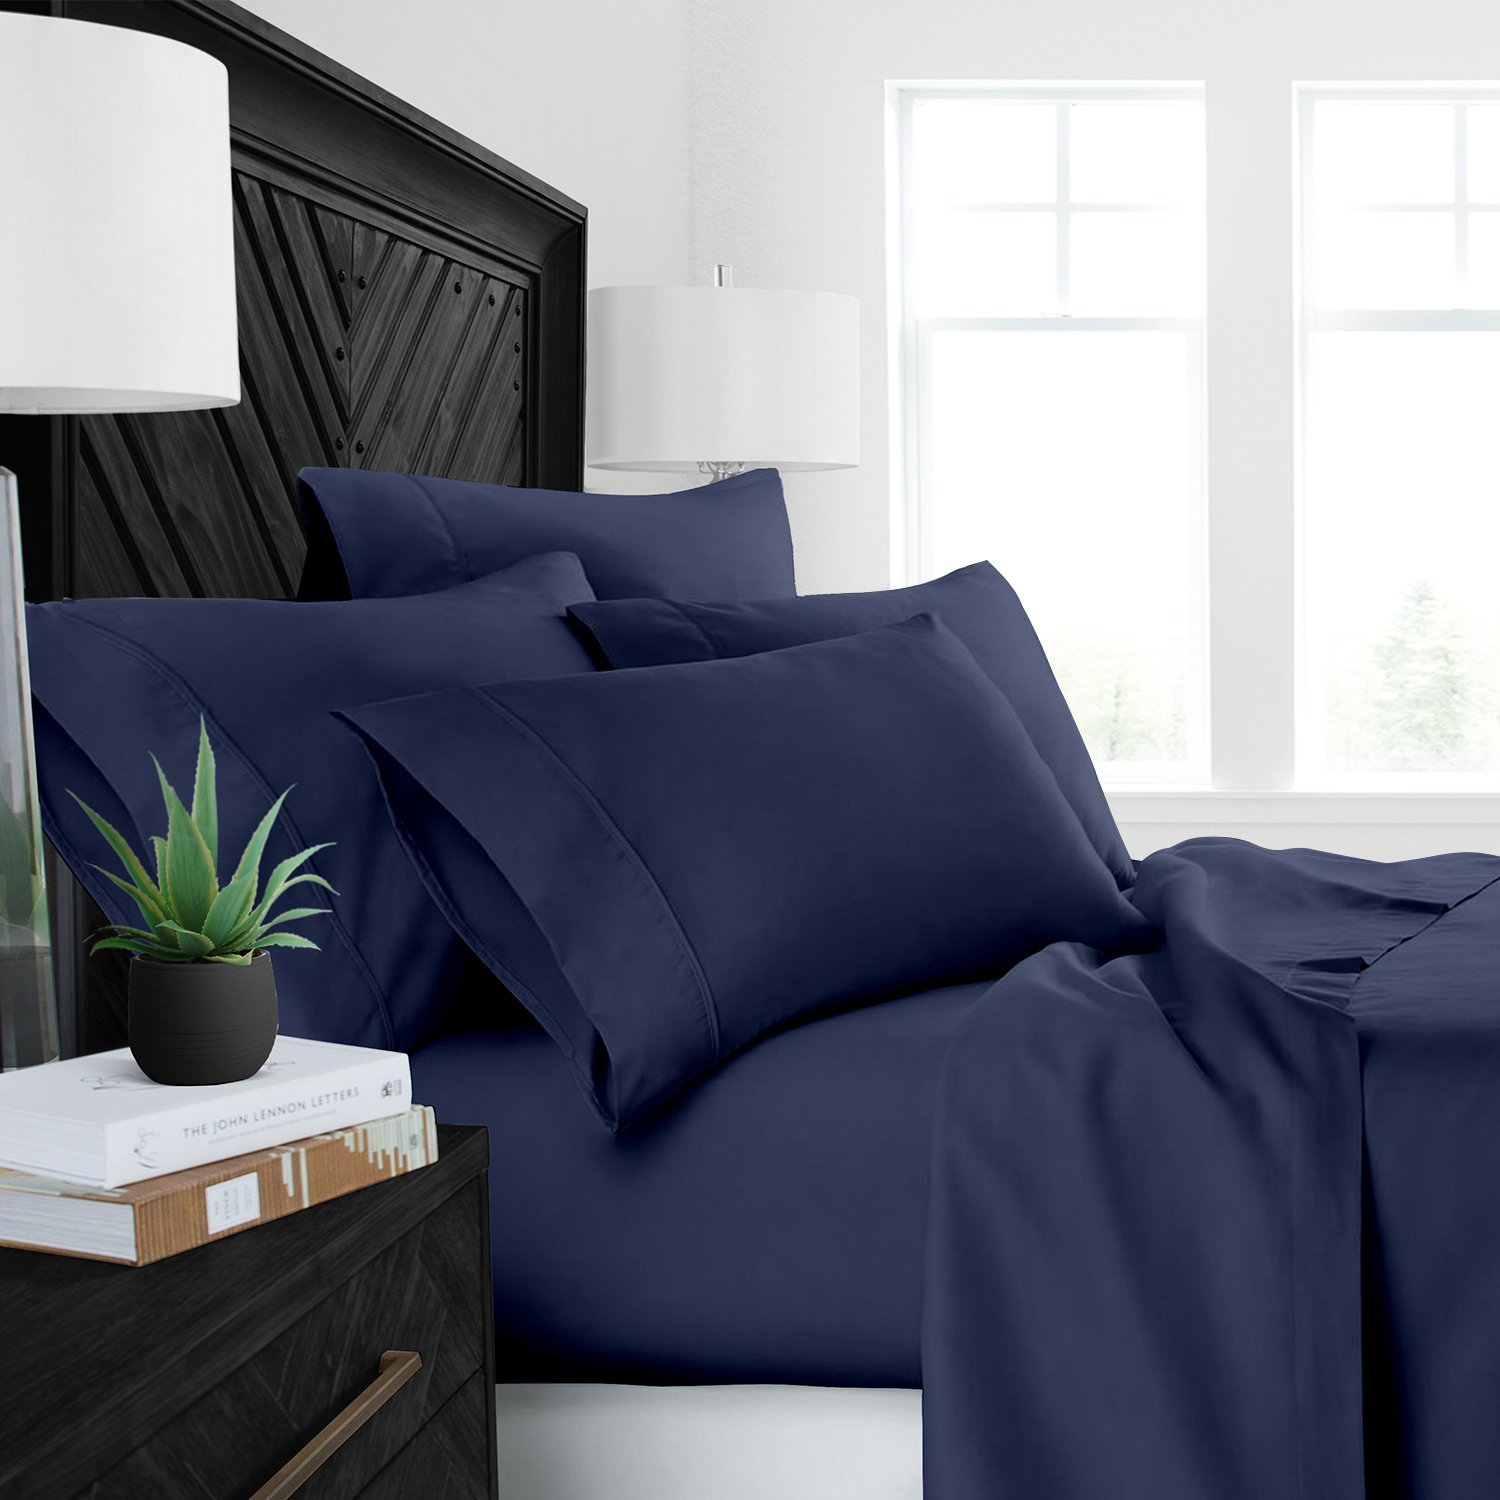 Sleep Restoration Luxury Bed Sheets with All-Natural Pure Aloe Vera Treatment - Eco-Friendly, Hypoallergenic 4-Piece Sheet Set Infused with Soothing/Moisturizing Aloe Vera - Full - Navy